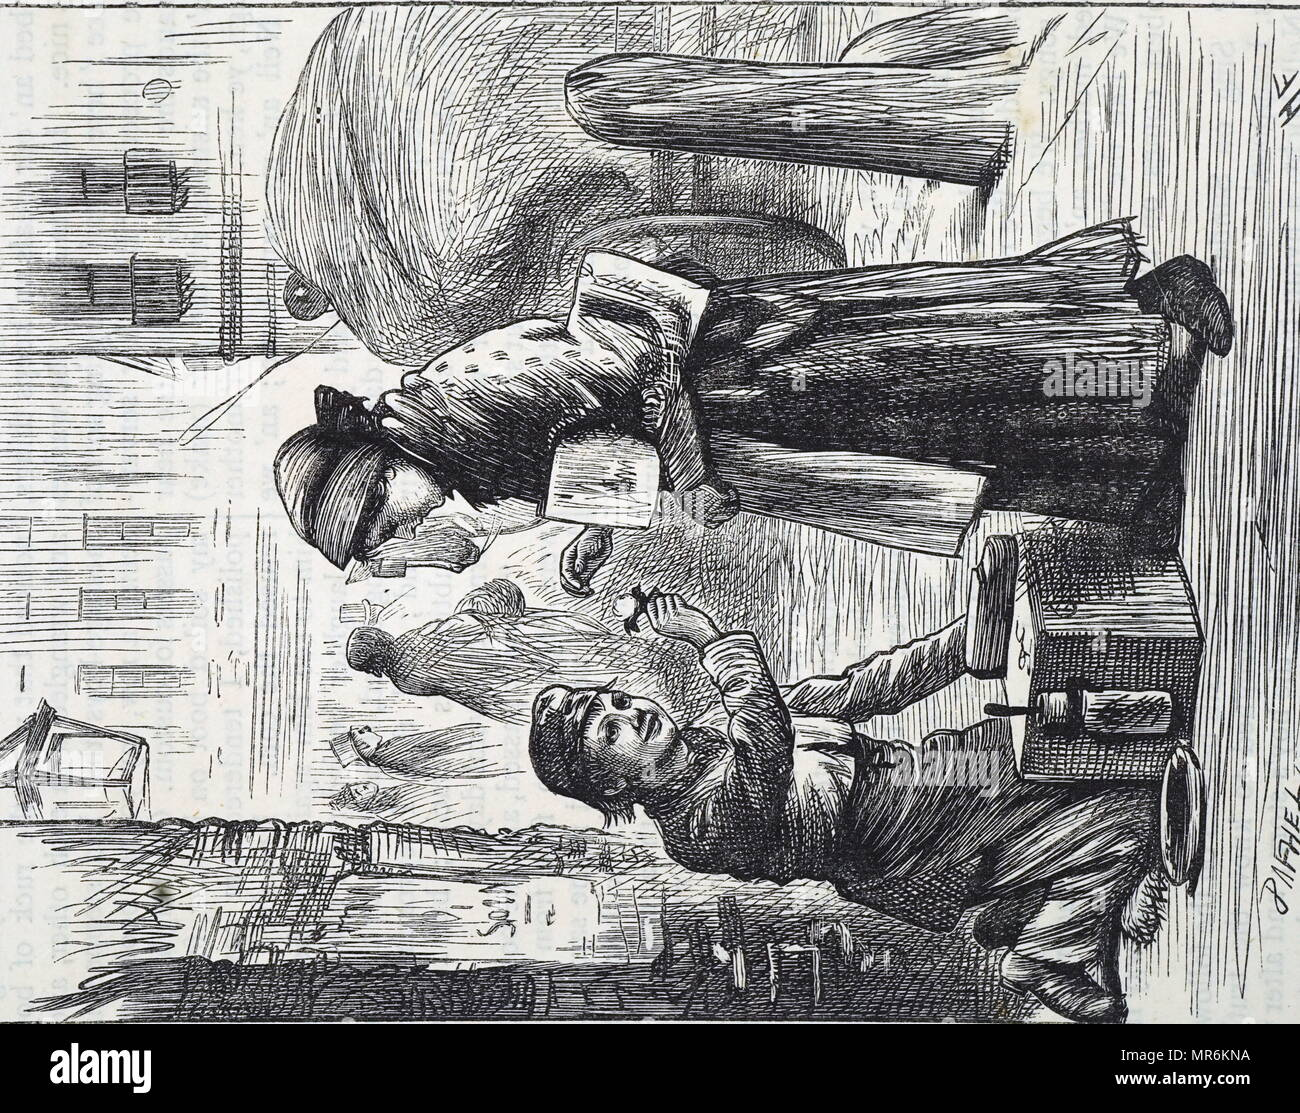 Engraving depicting a boot-boy giving a flower to a regular customer. Dated 19th century - Stock Image